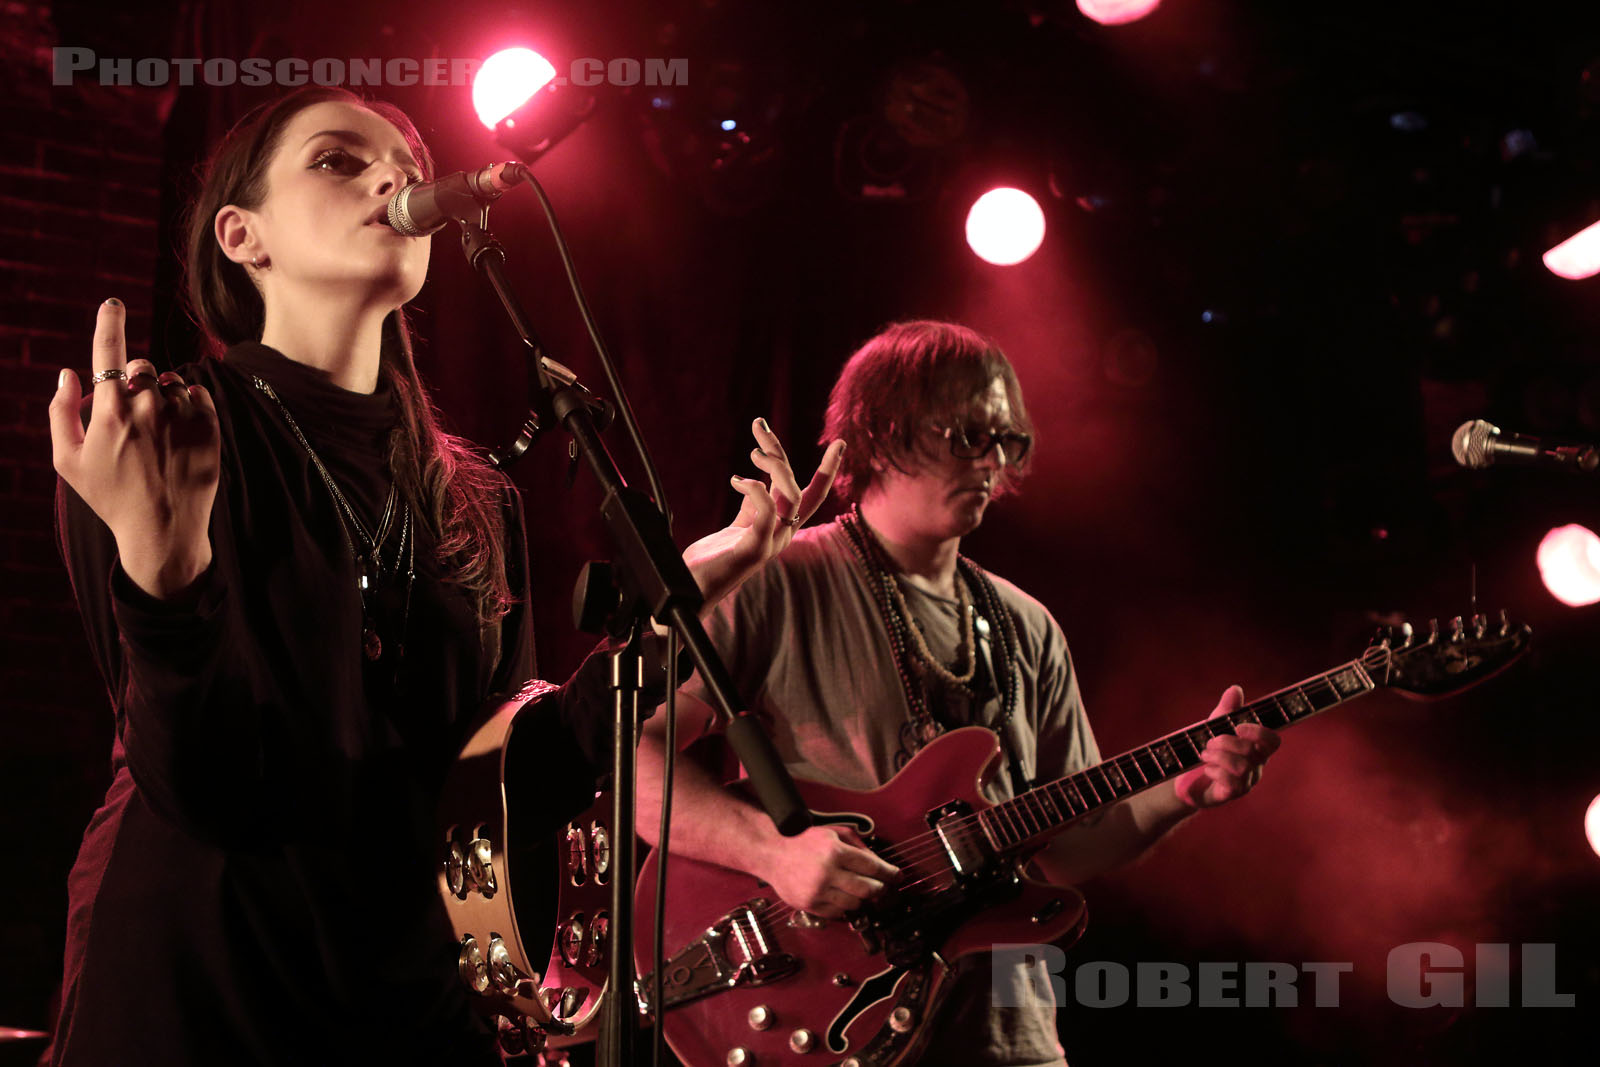 TESS PARKS AND ANTON NEWCOMBE - 2015-07-21 - PARIS - La Maroquinerie